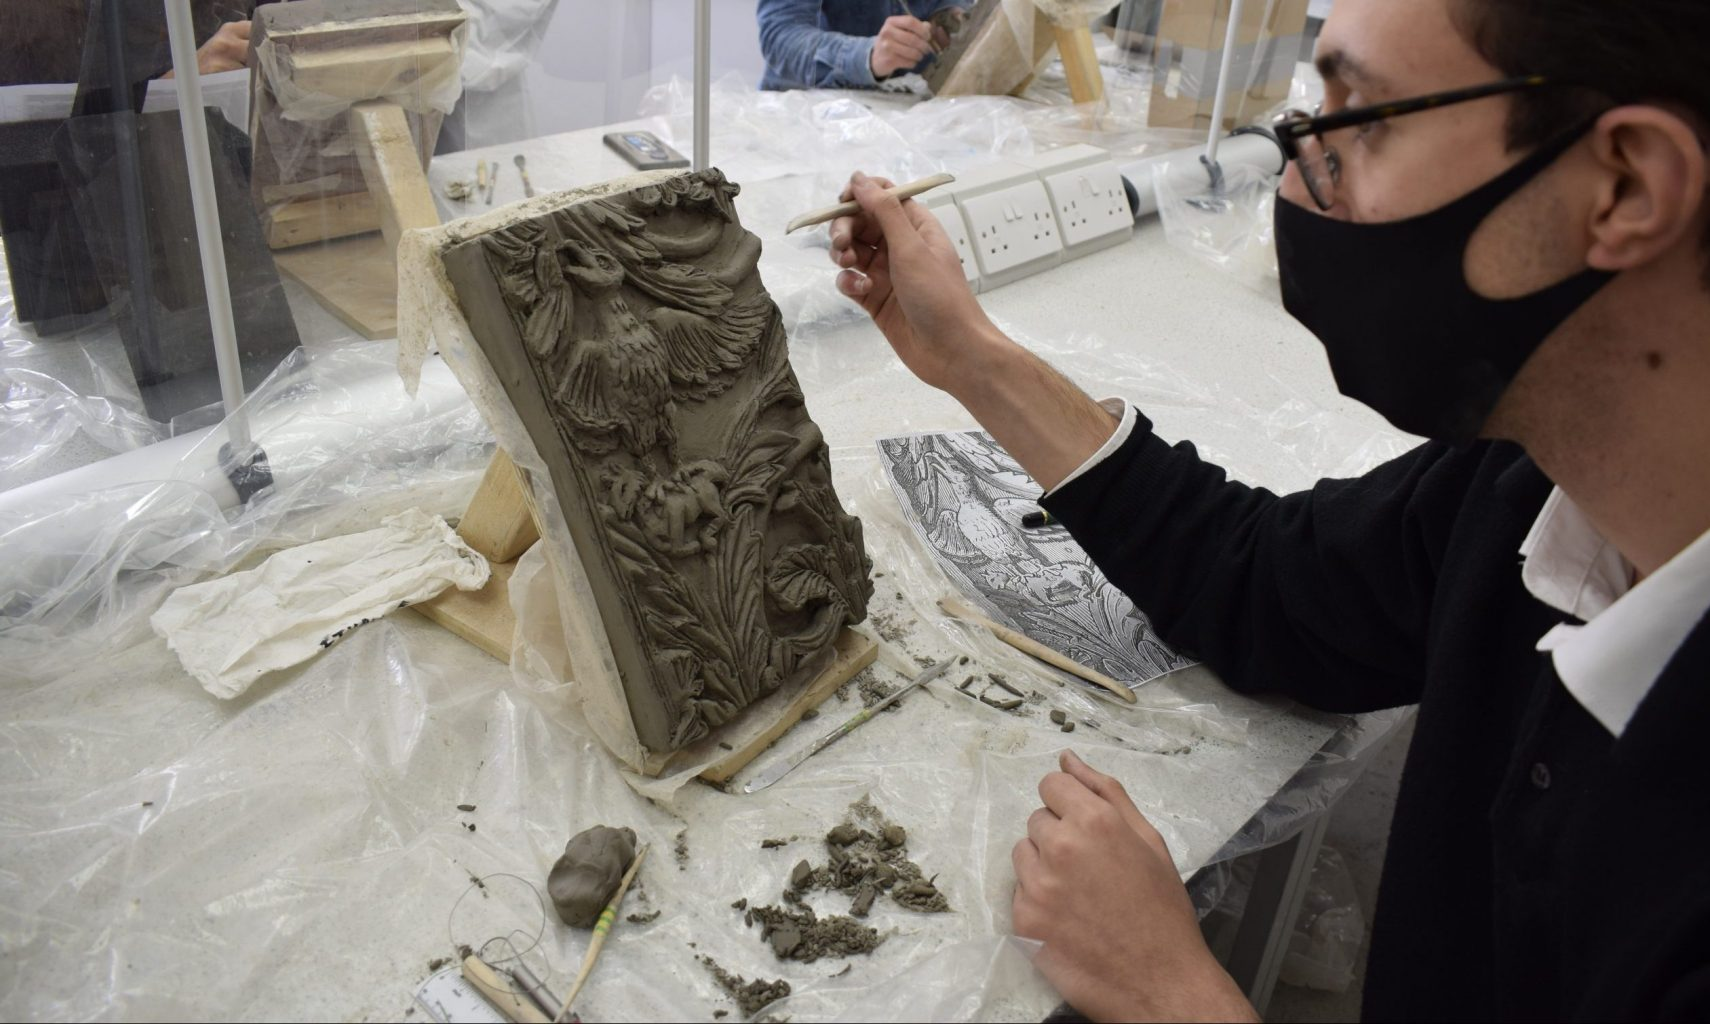 How can an Art School function during a global pandemic? - BA Conservation student in bas relief workshop